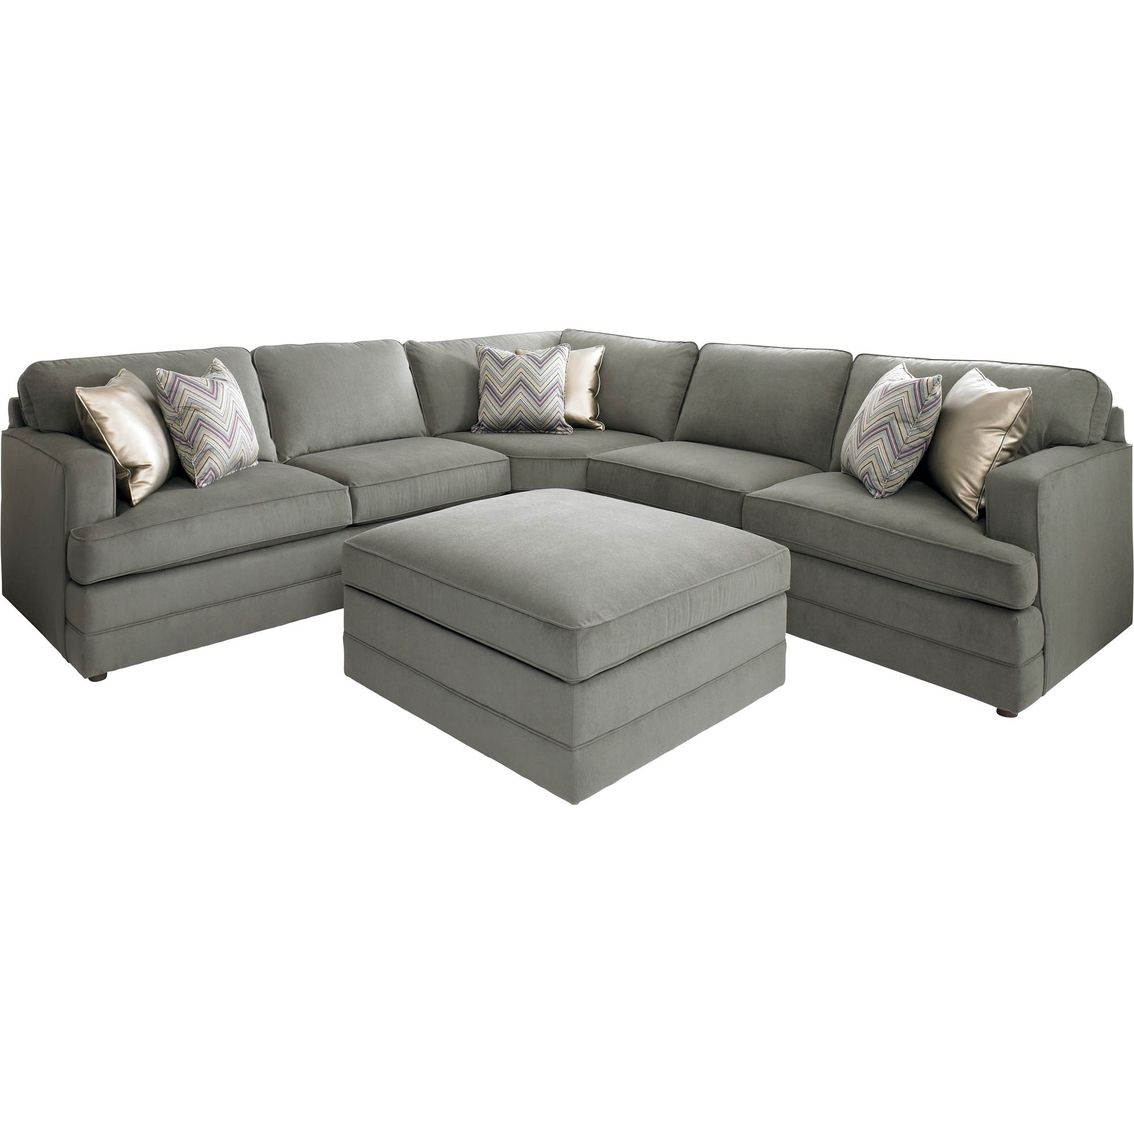 L Shape Sectional Sofa Sectional Sofa Design Best Er L